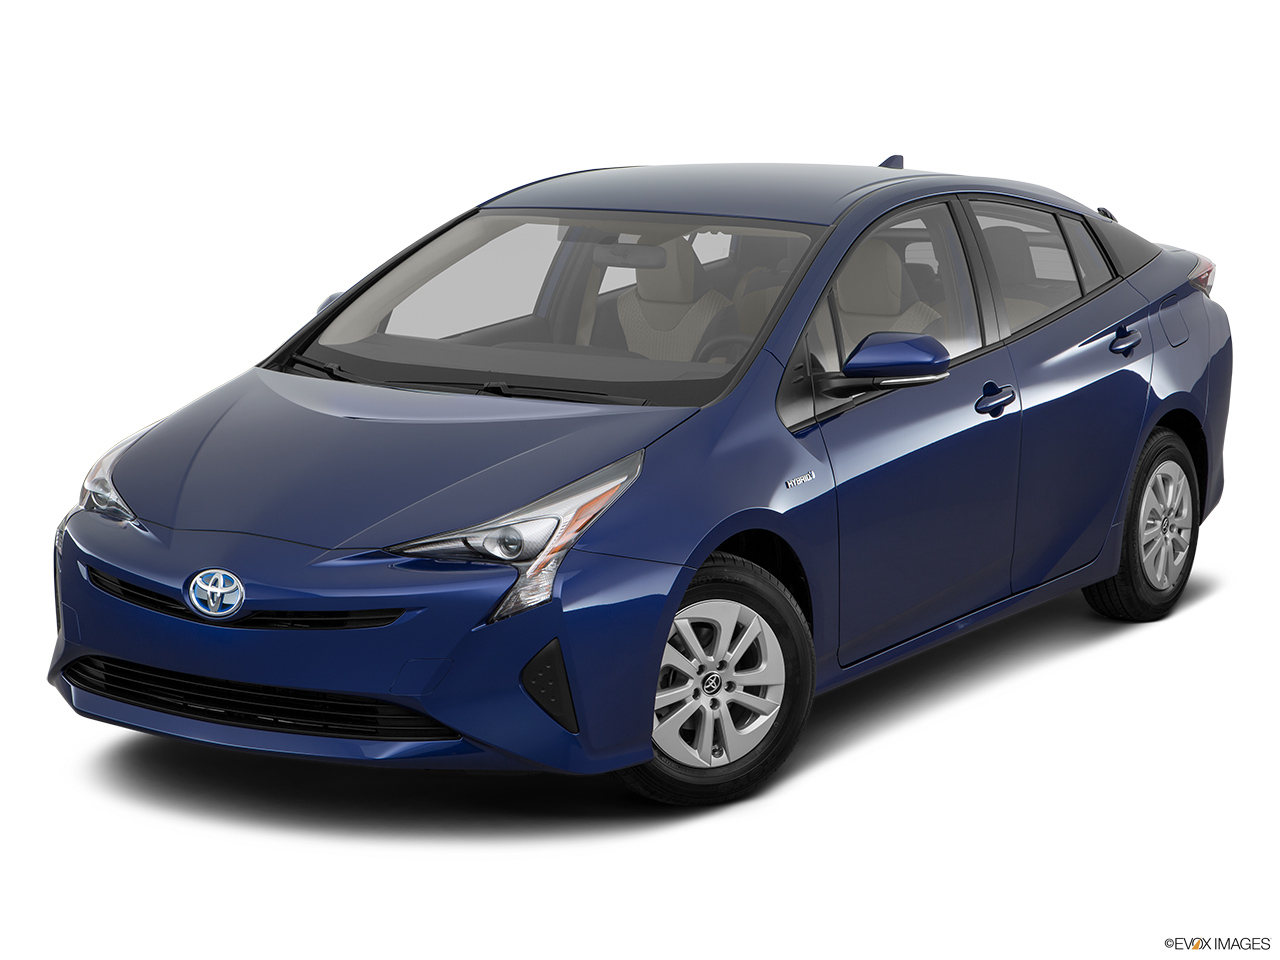 toyota prius 2016 dynamic in saudi arabia new car prices. Black Bedroom Furniture Sets. Home Design Ideas